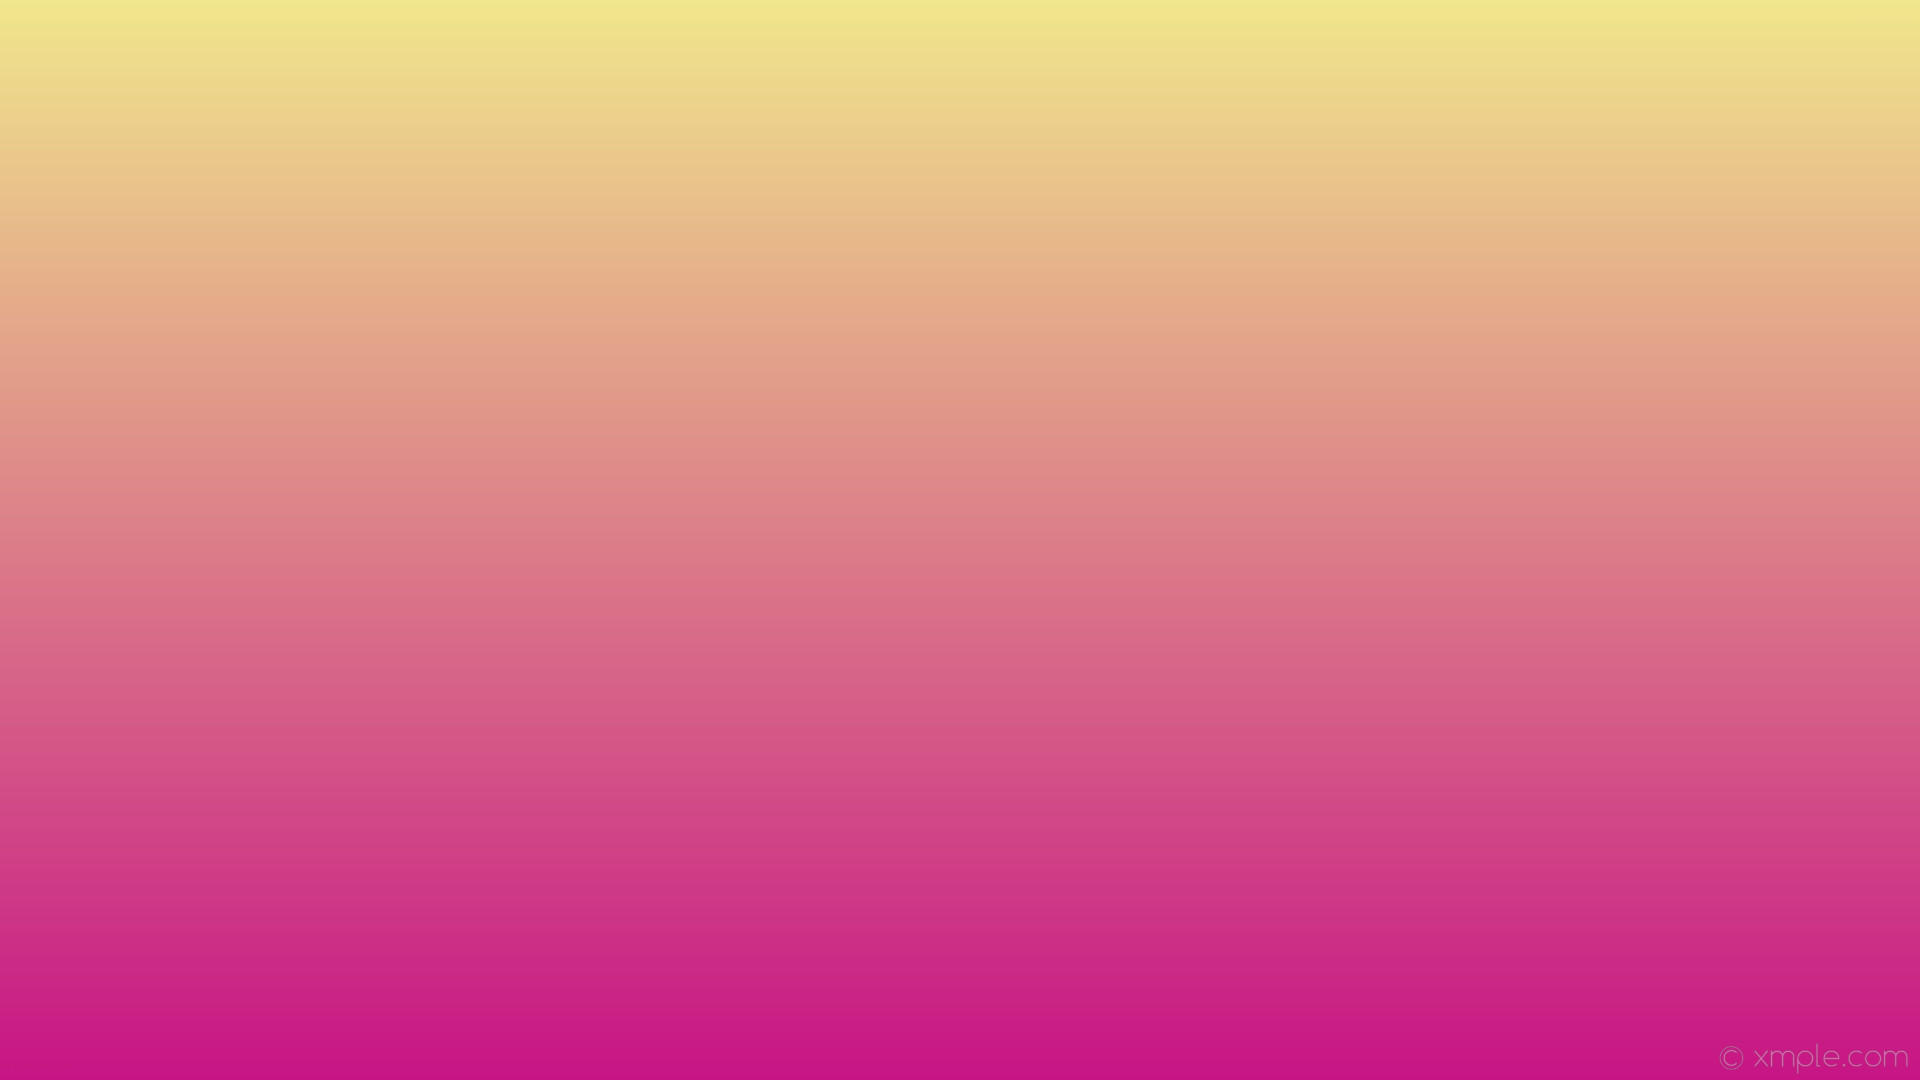 ombre pink and orange wallpaper  61  images